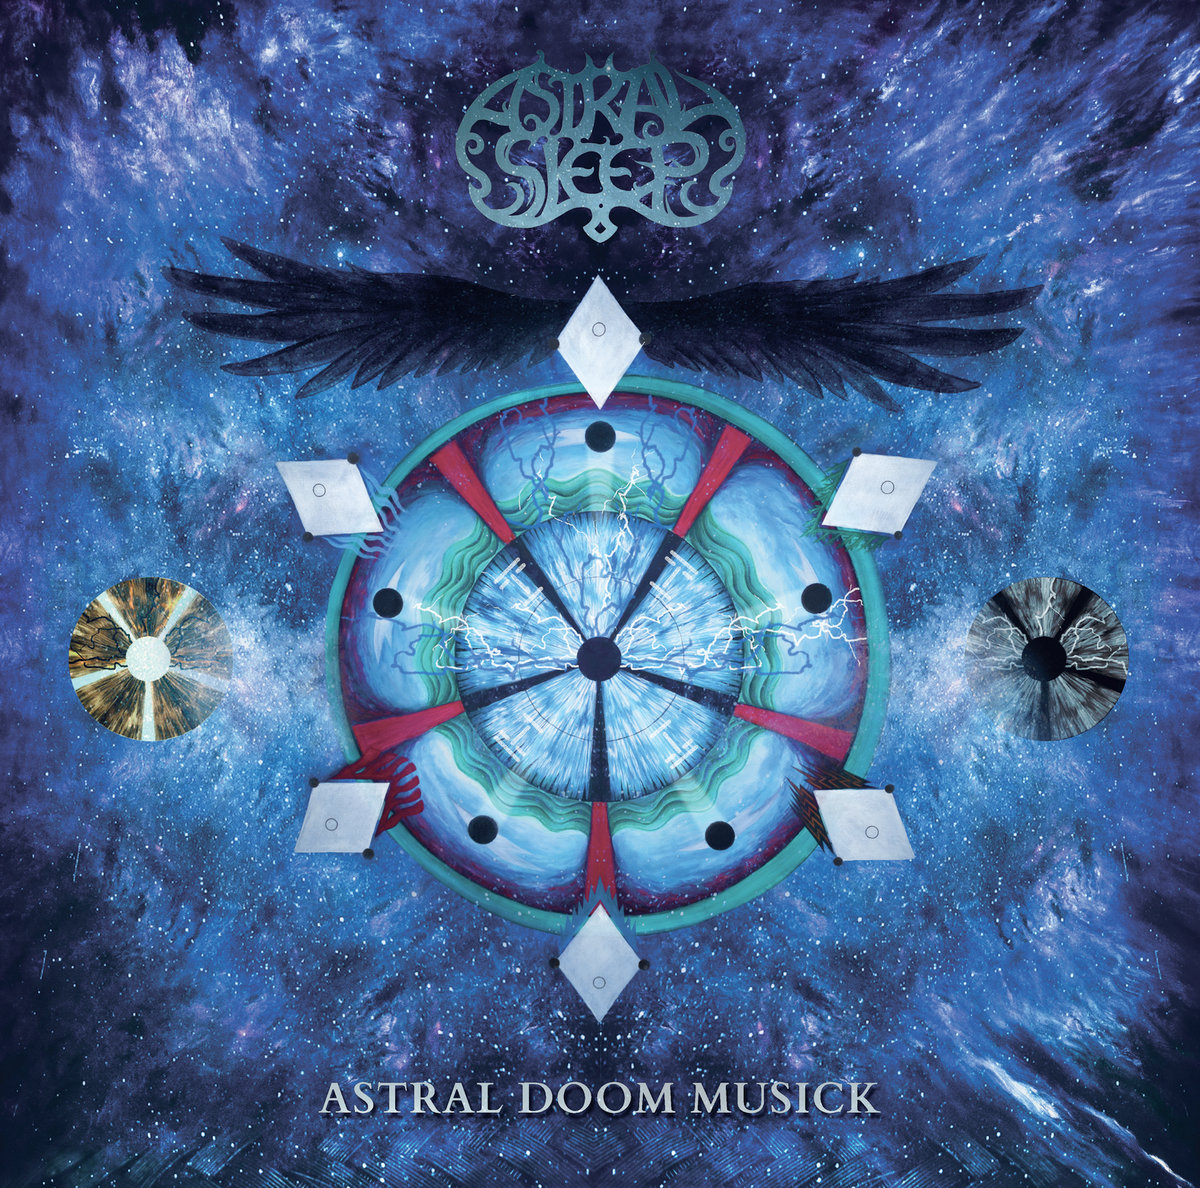 Astral Sleep Astral Doom Musick